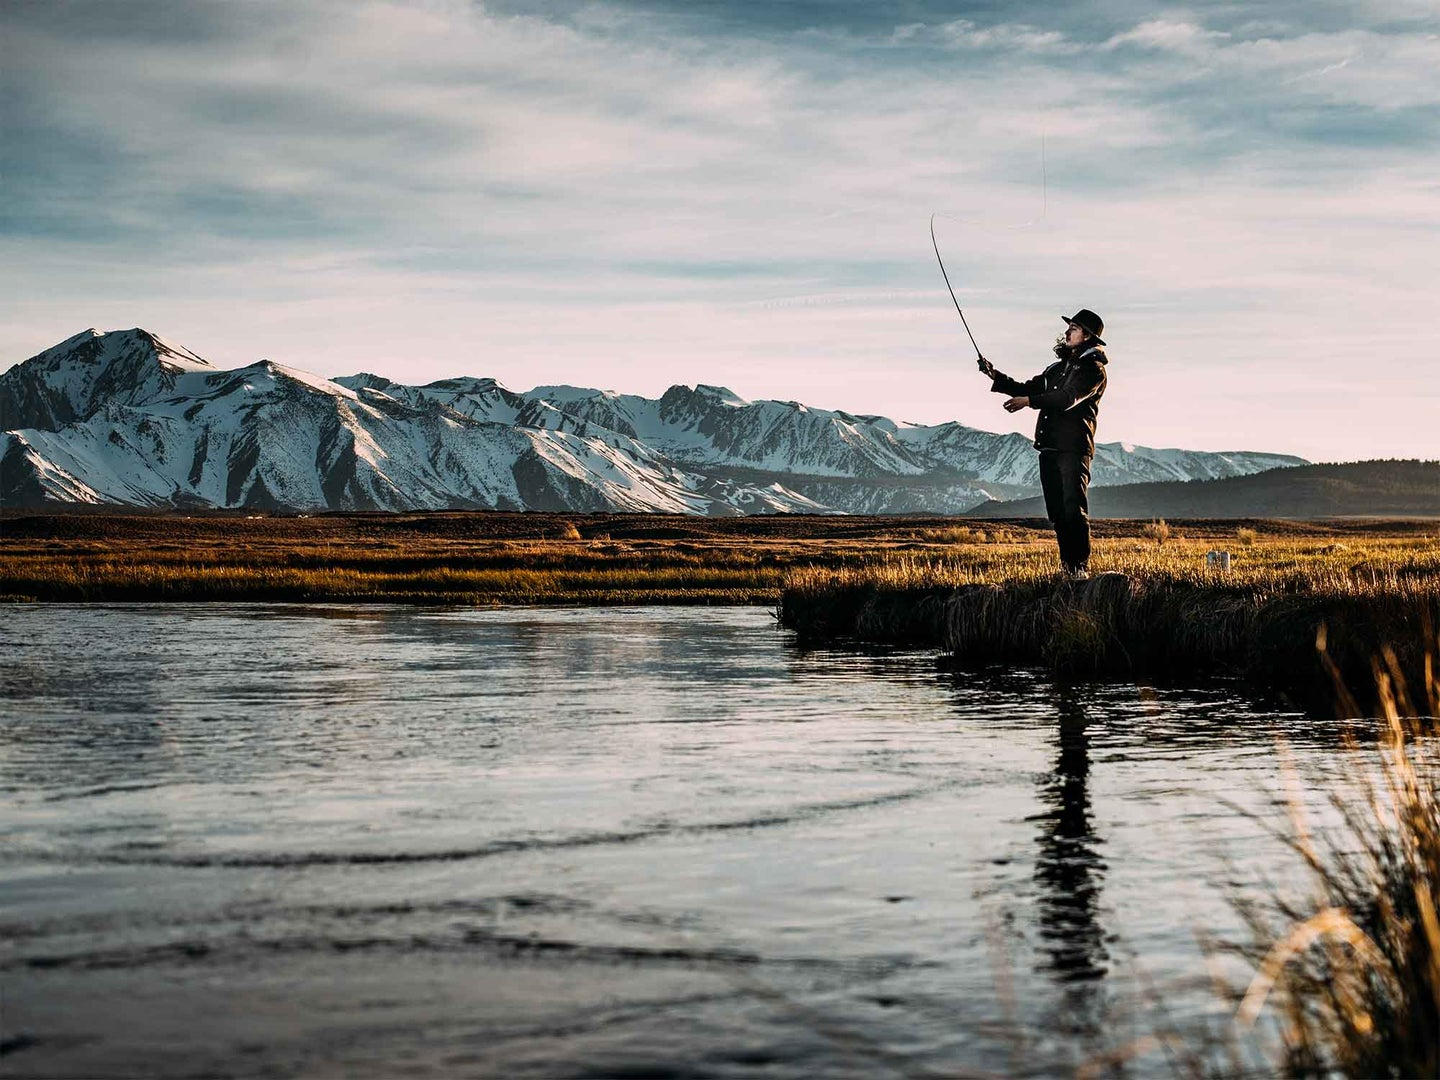 Fly fishing elbow is just as bad as tennis elbow. An elbow brace can help reduce the pain.